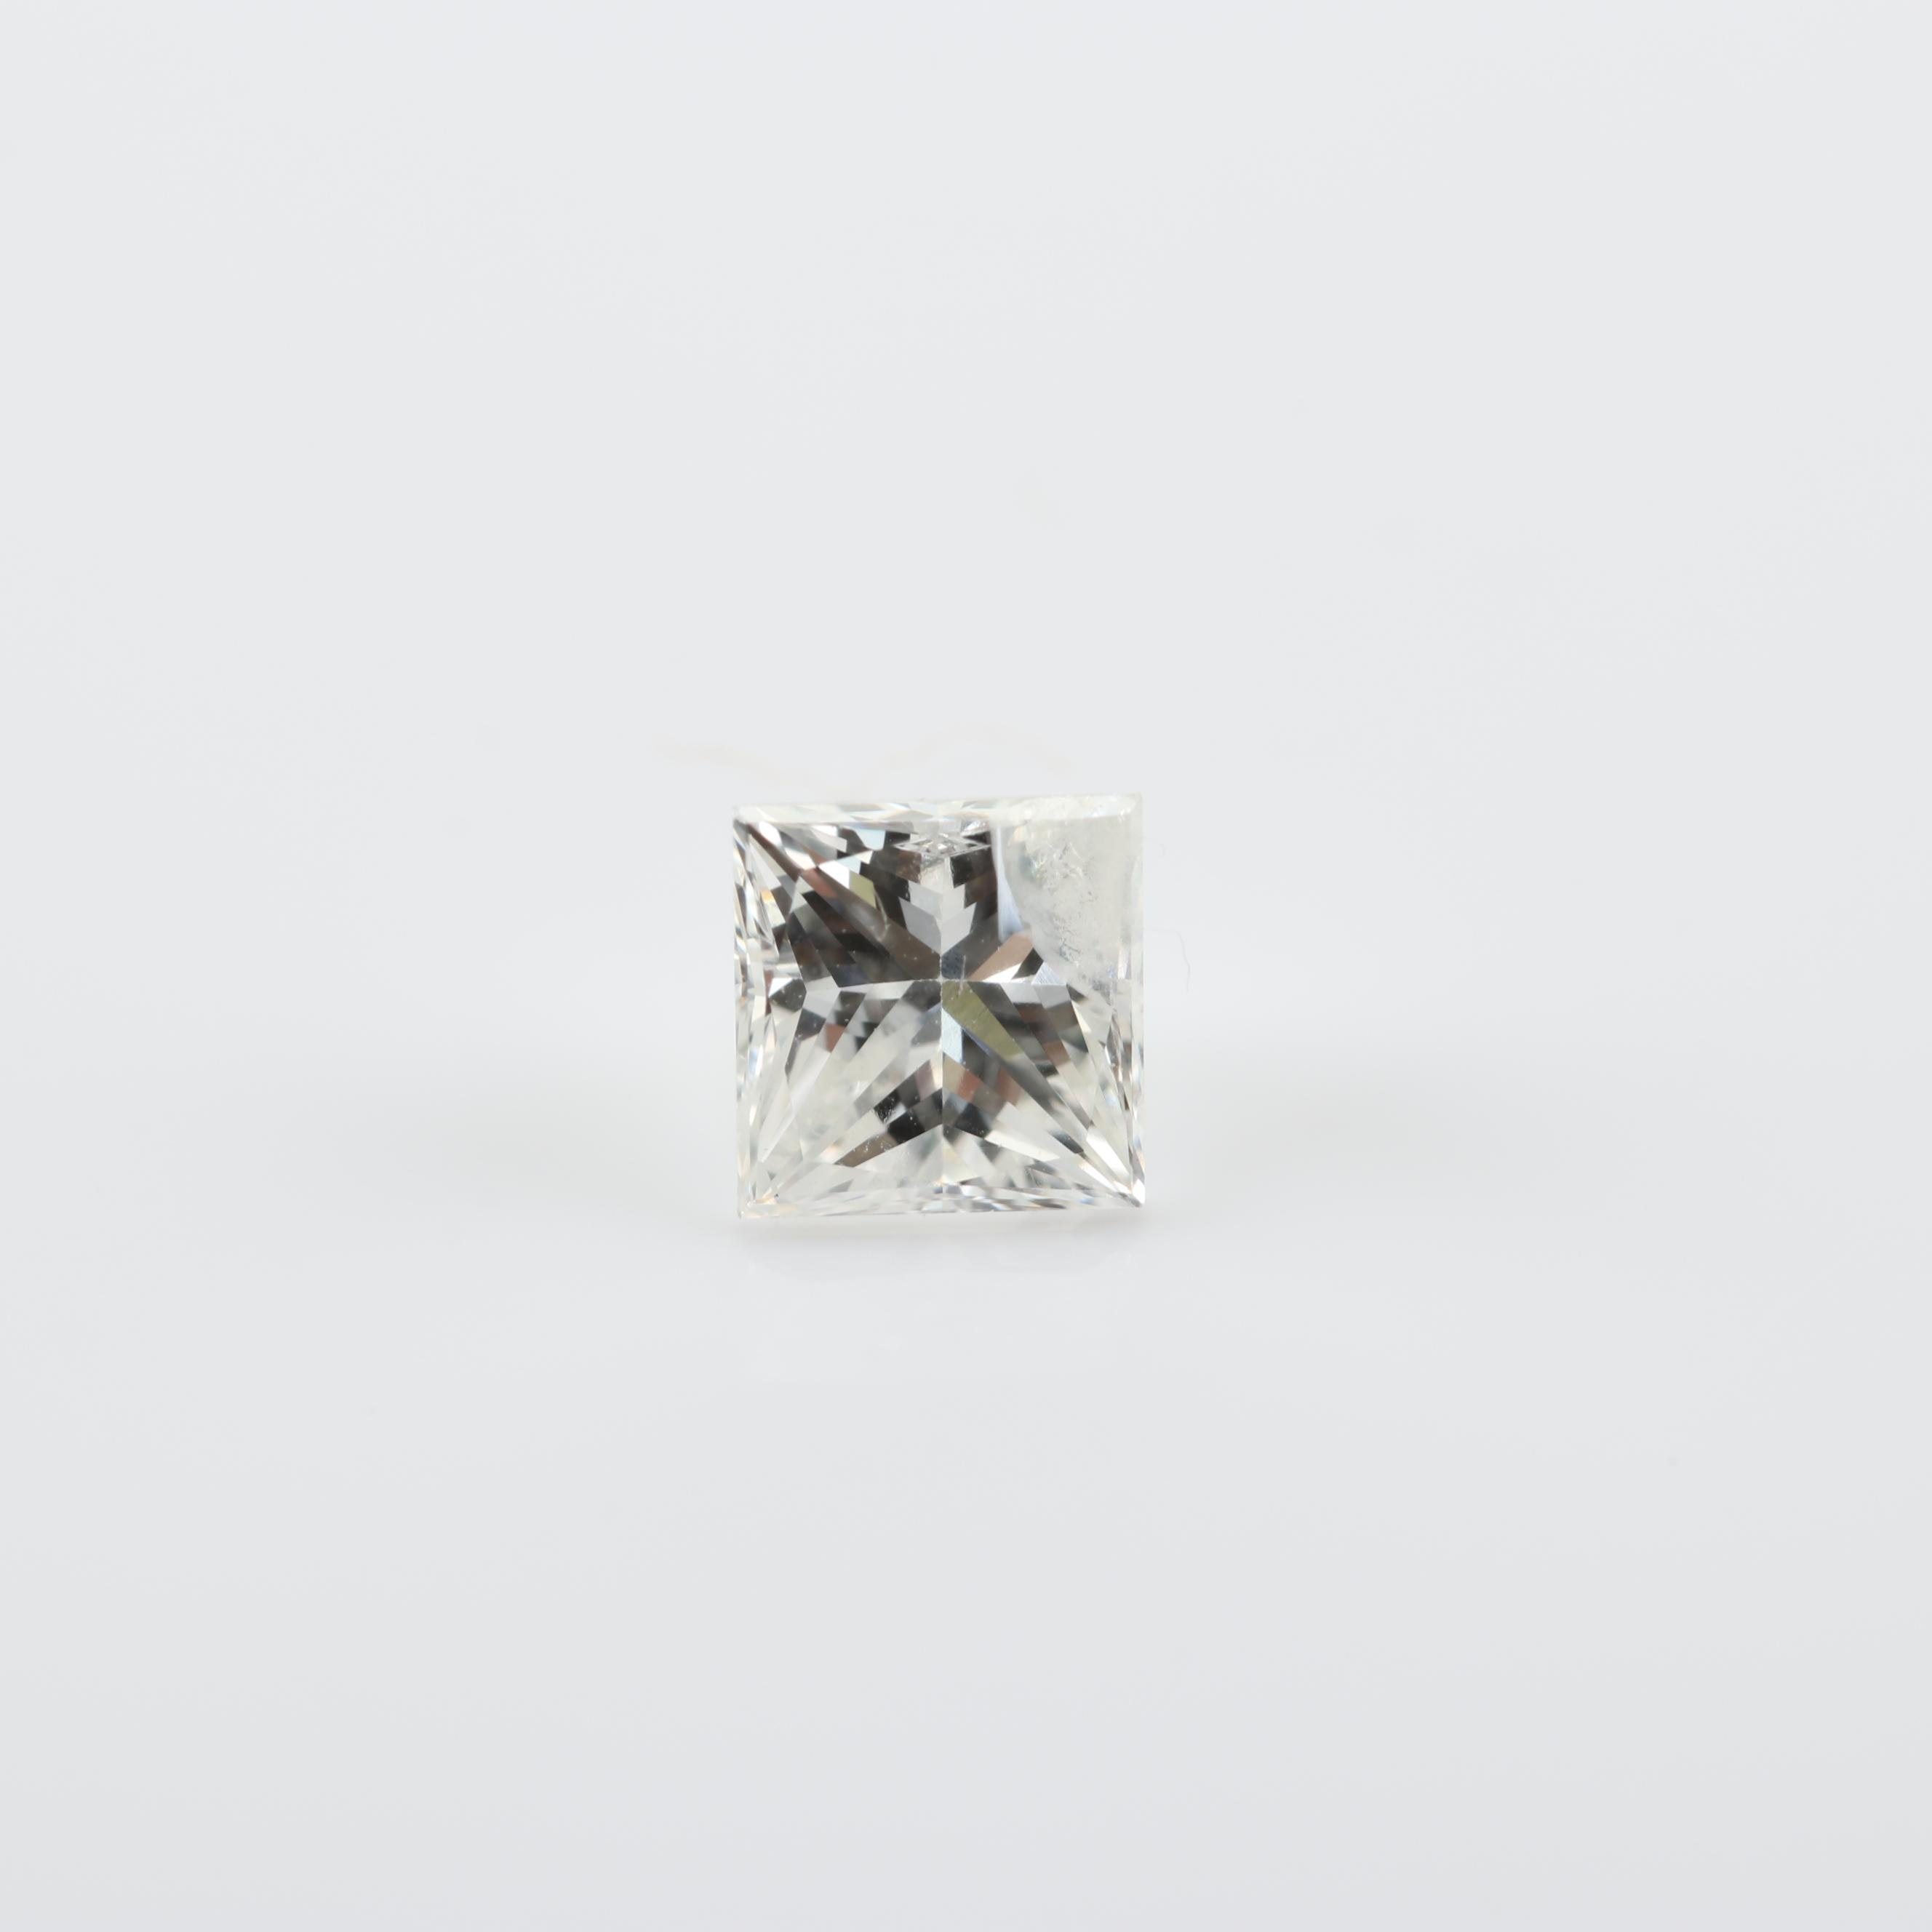 Loose 0.40 CT Diamond